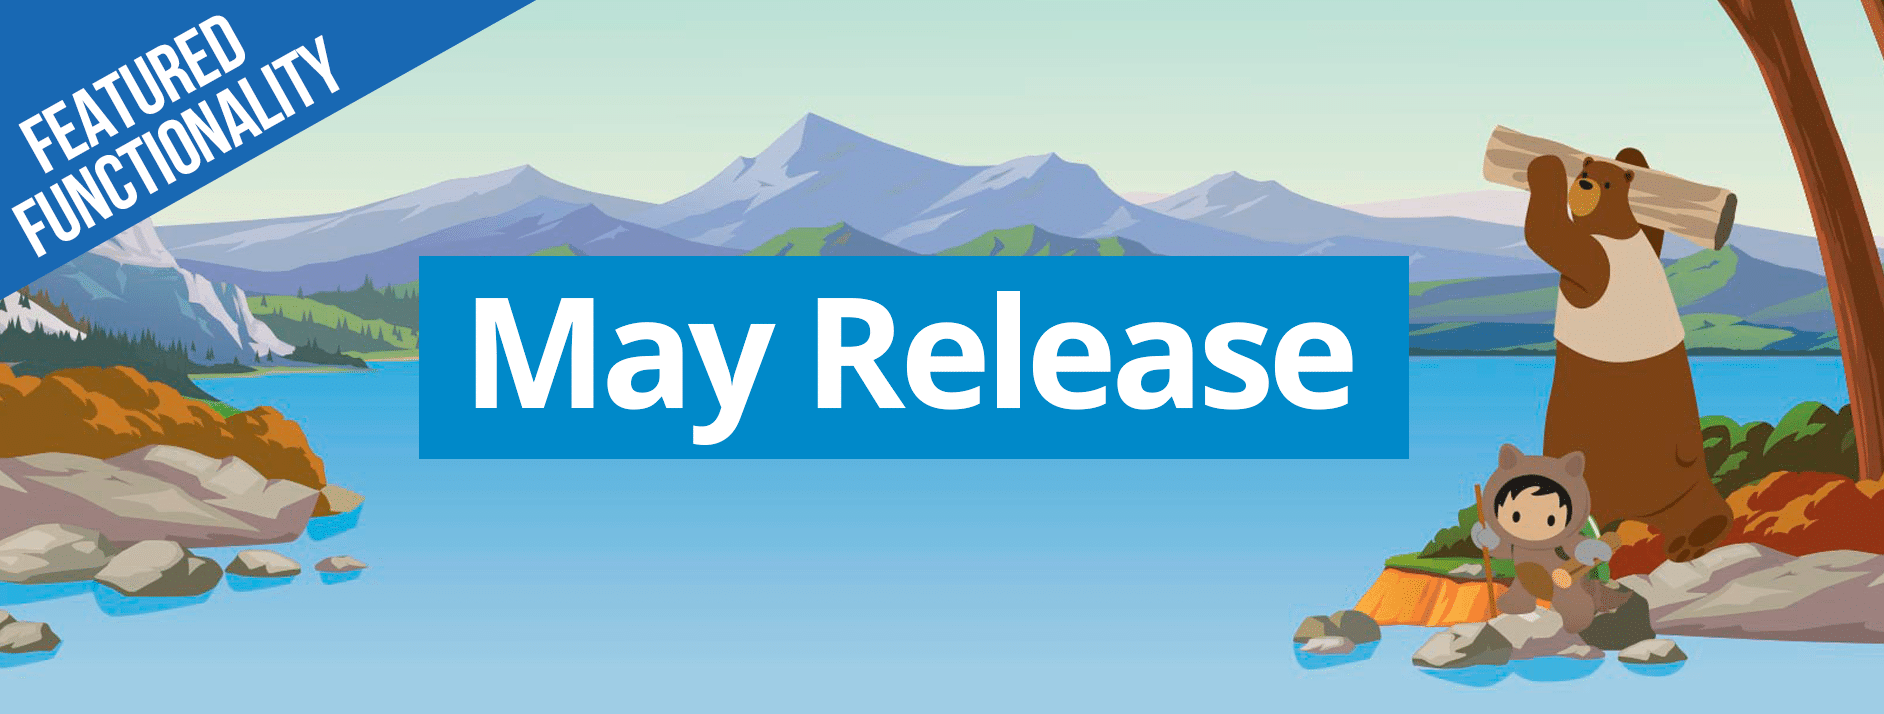 5.0 release | May 2021